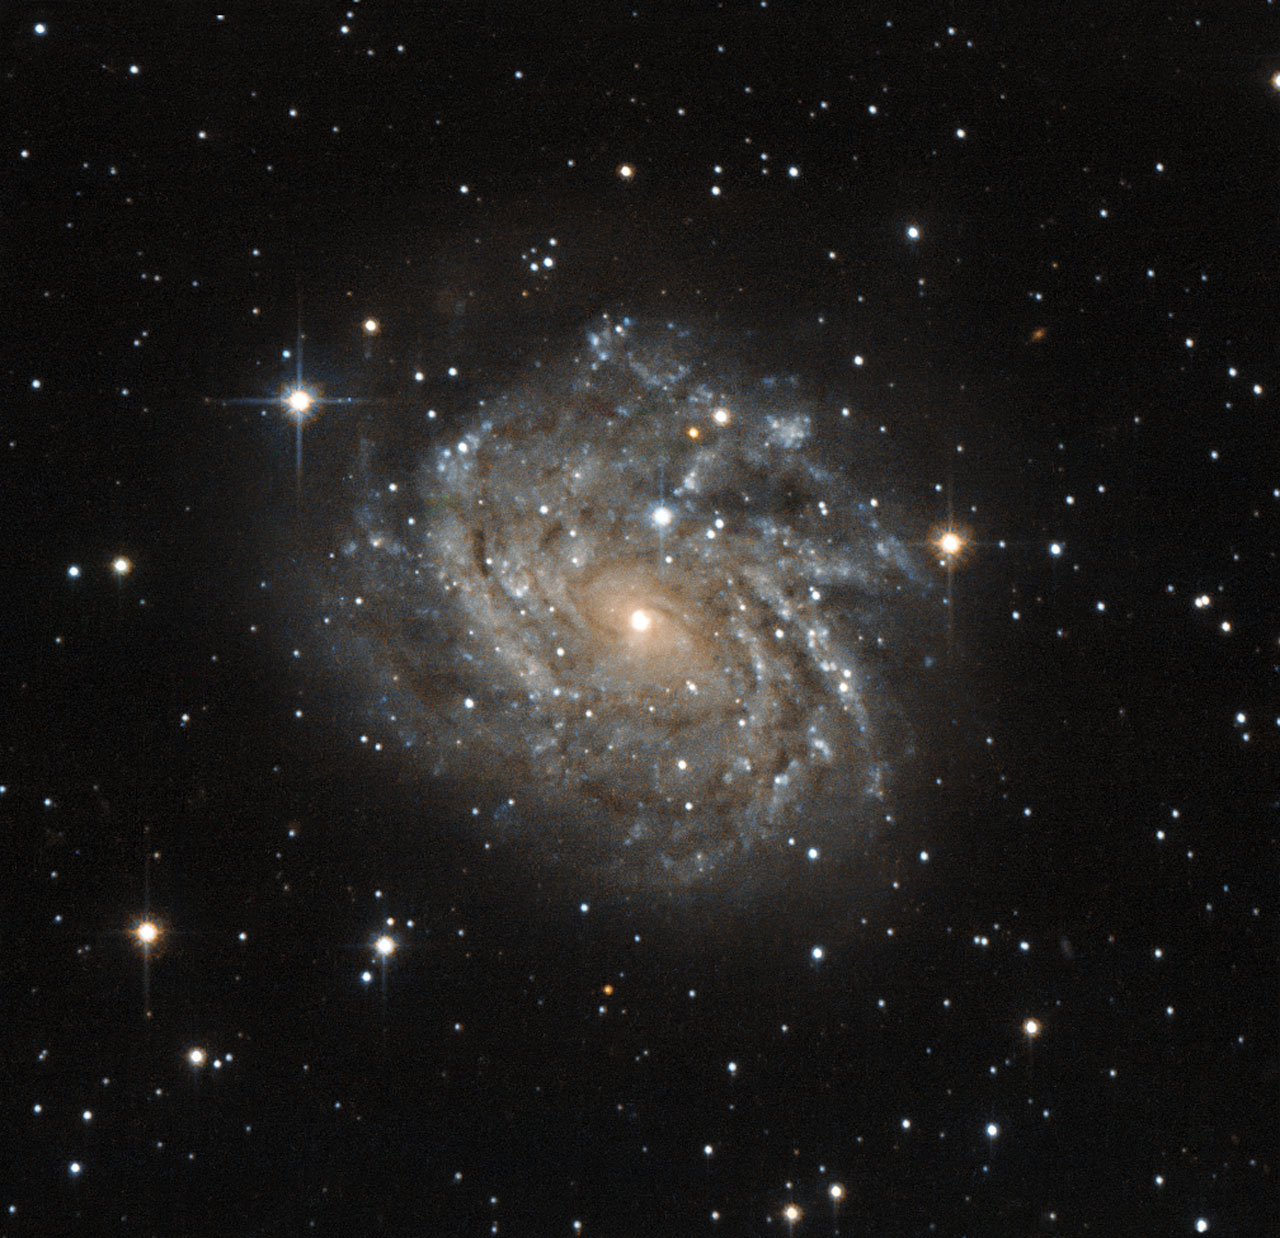 nasa galaxy pictures high resolution - photo #5